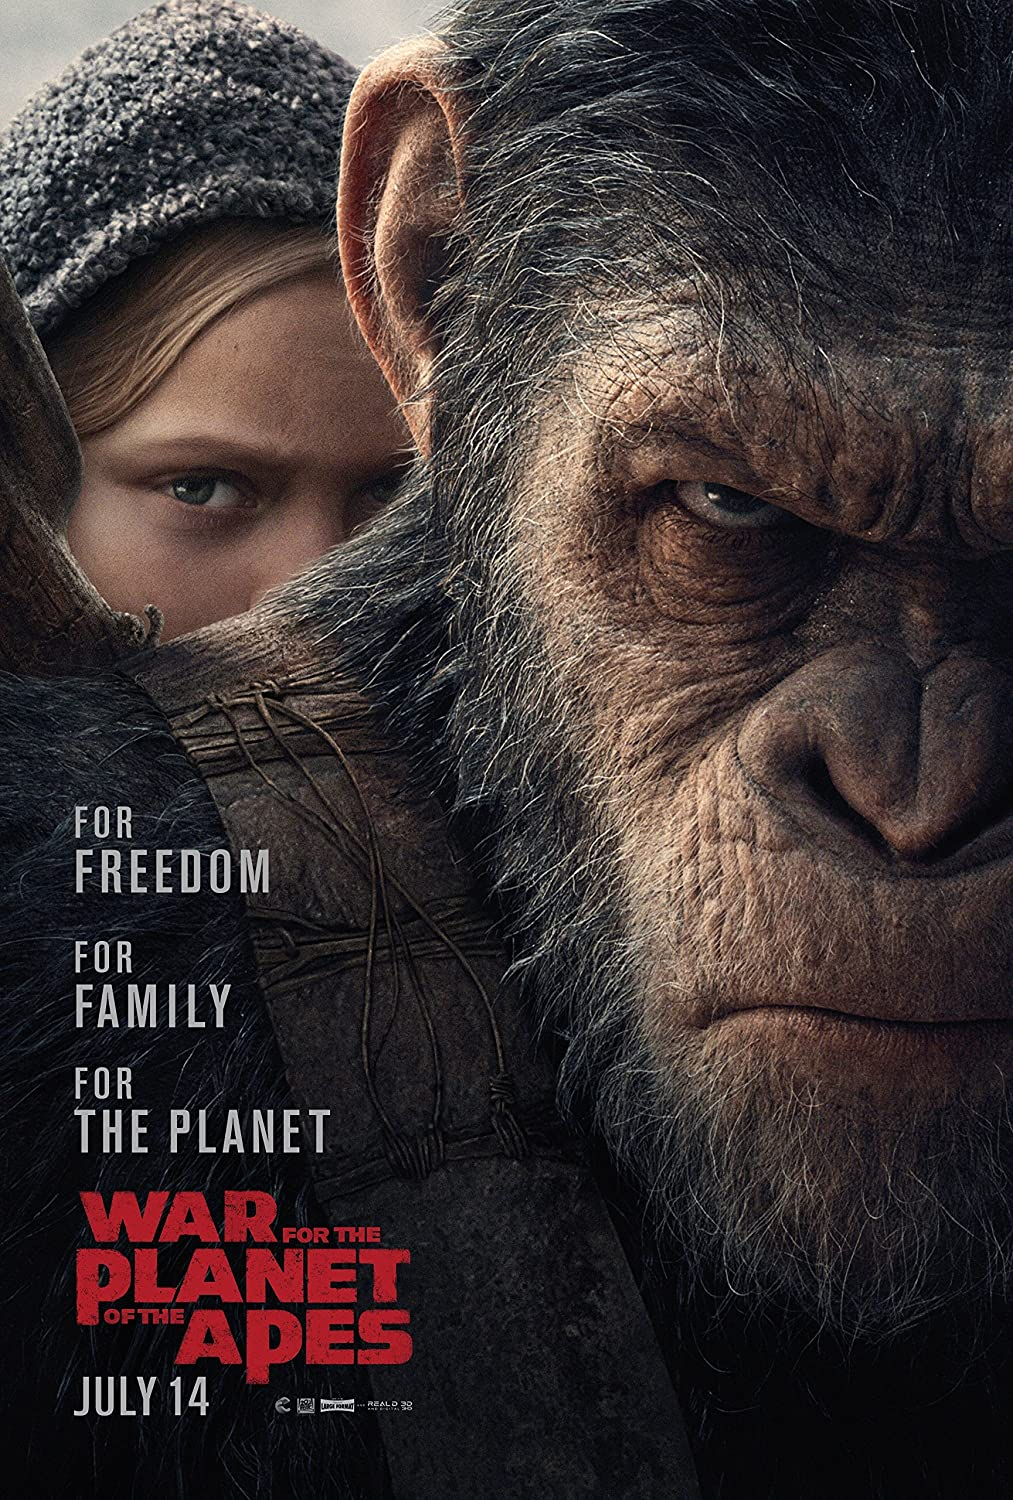 Amazon.com : War for the Planet of the Apes Movie Poster Limited ...